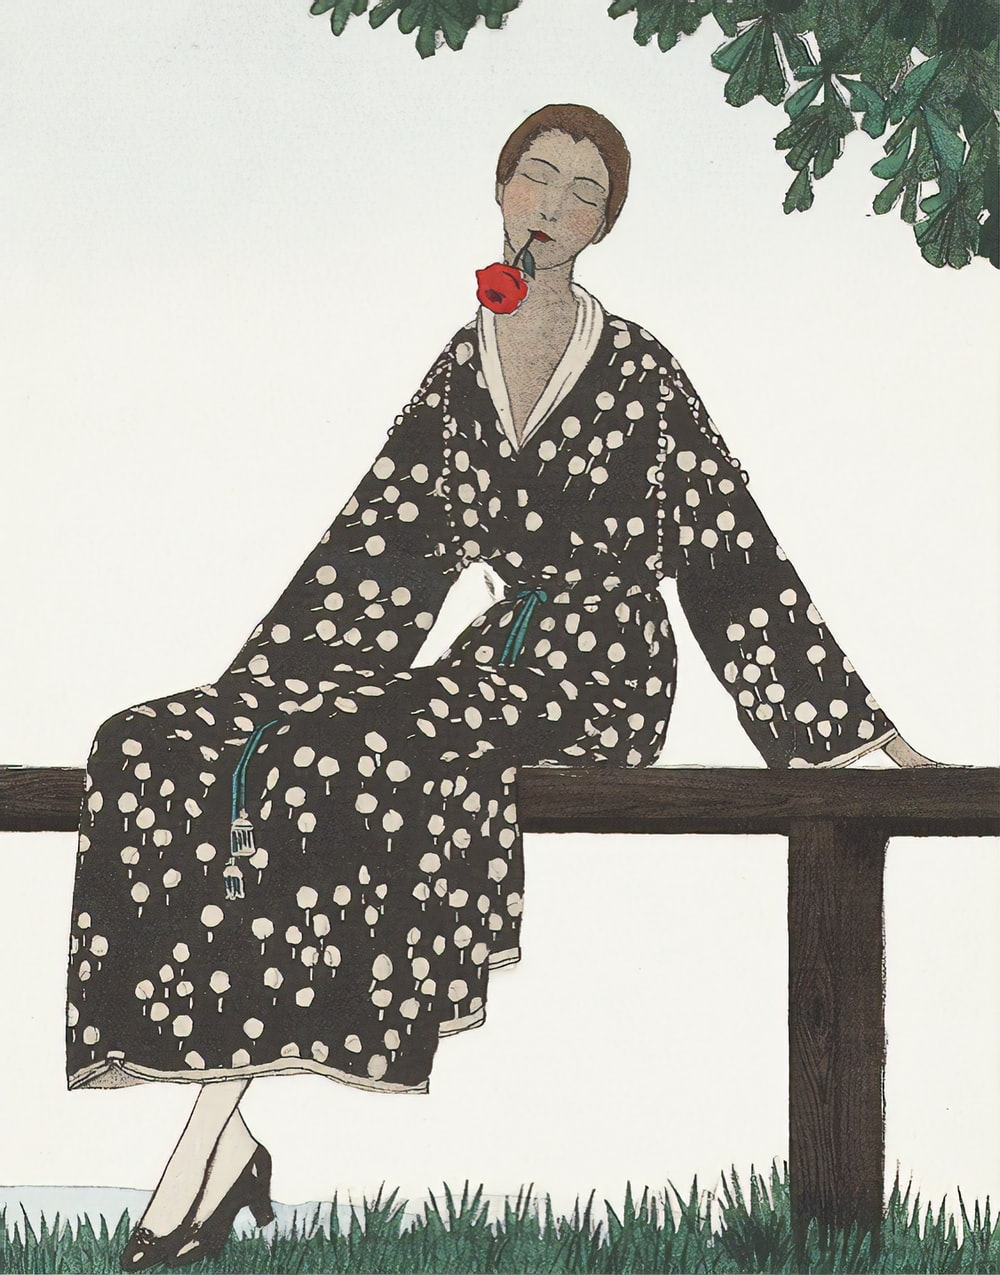 woman in black and white floral robe sitting on brown wooden bench